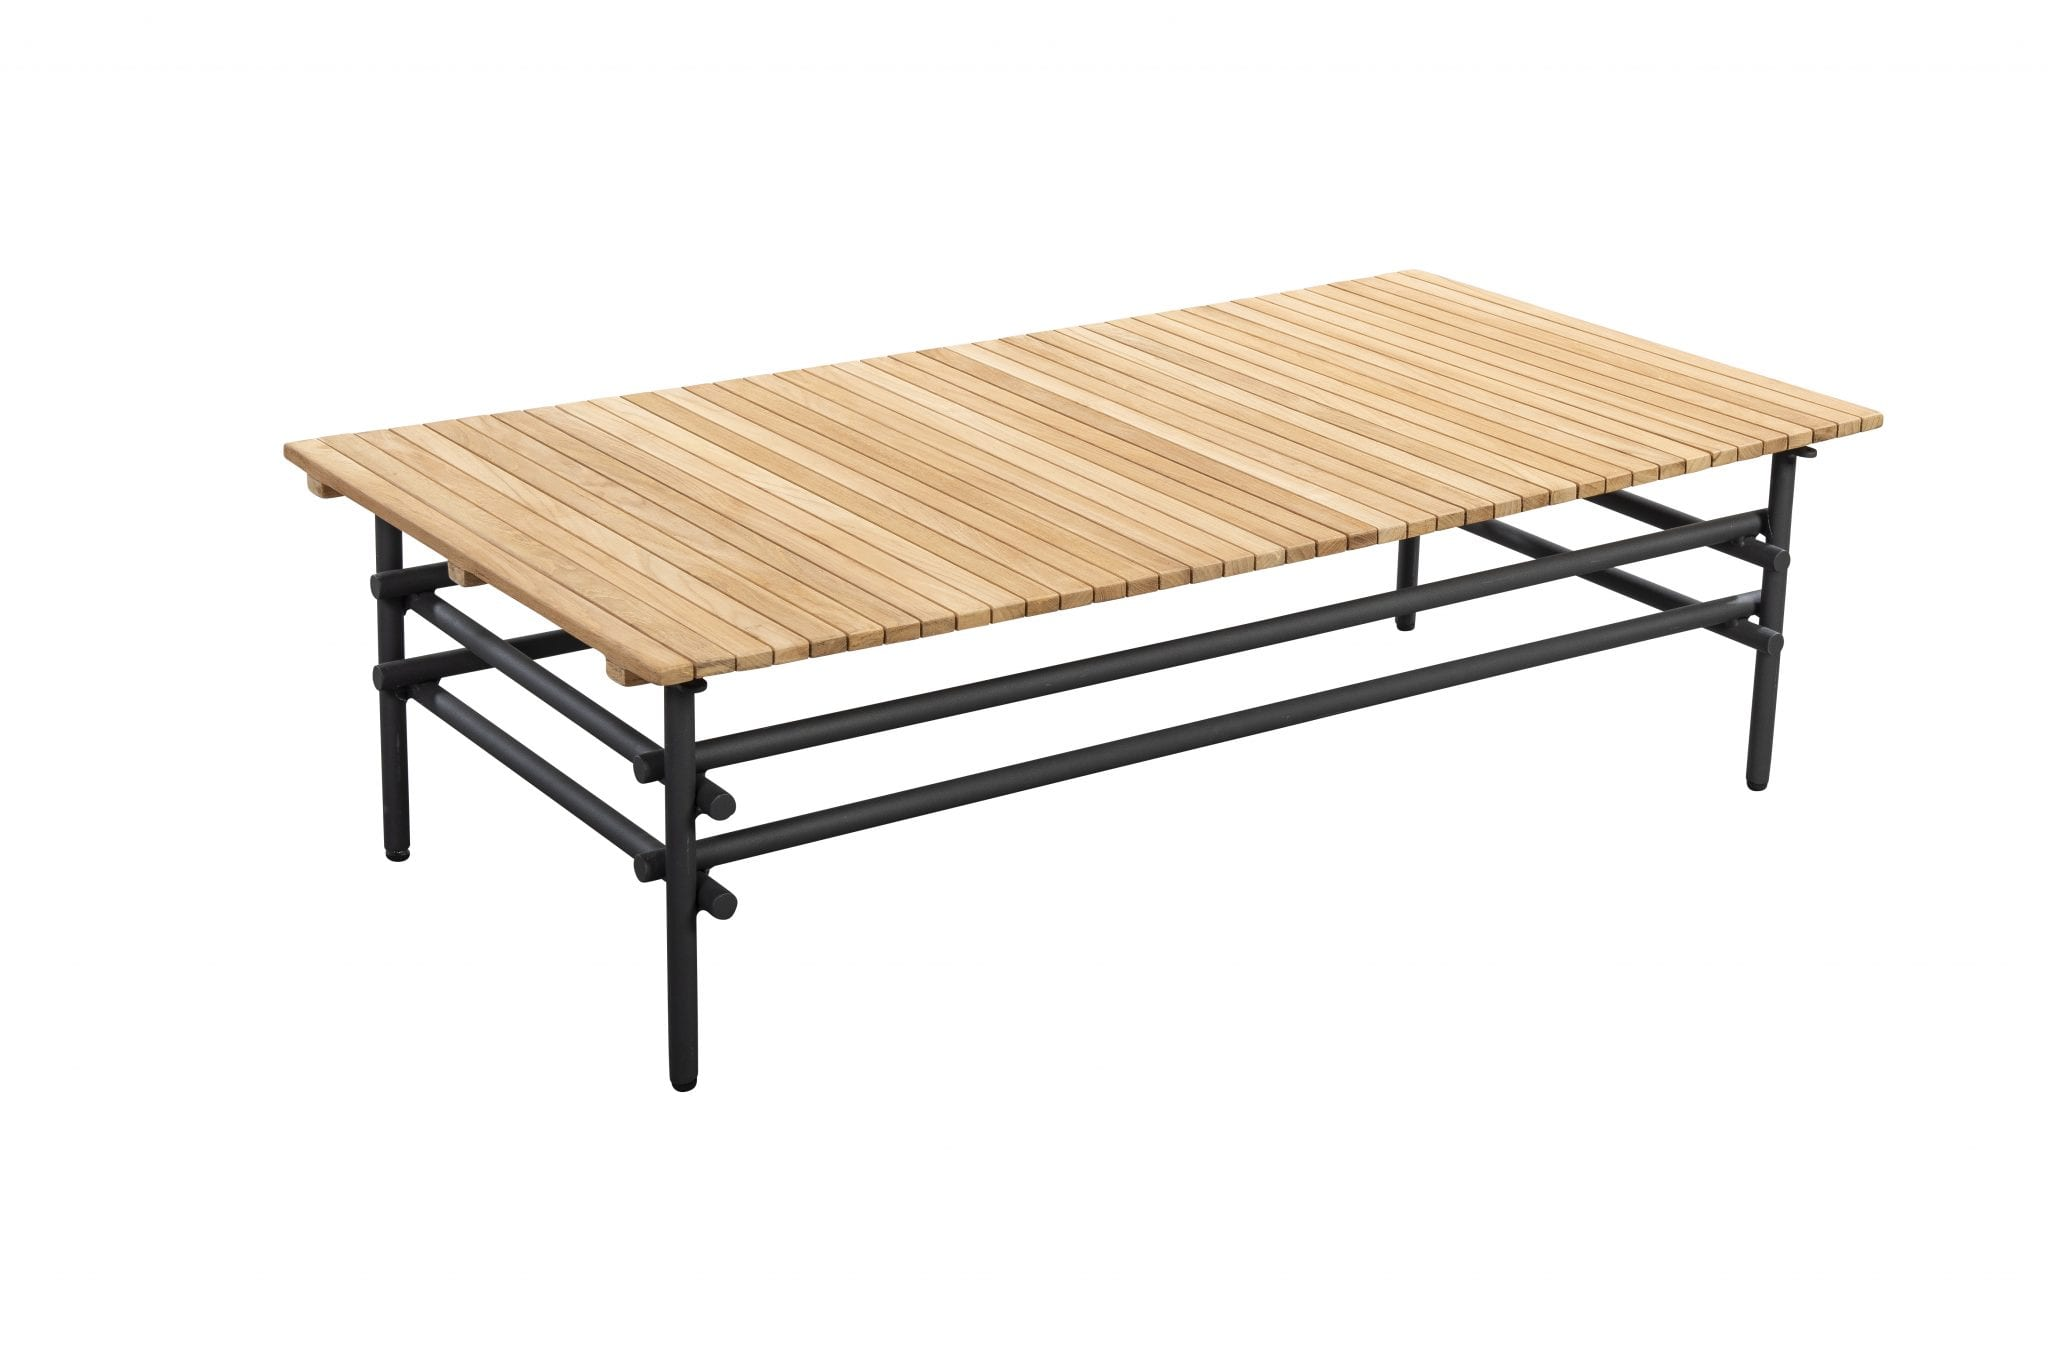 Ki 125x60 coffee table - dark grey | Yoi Furniture